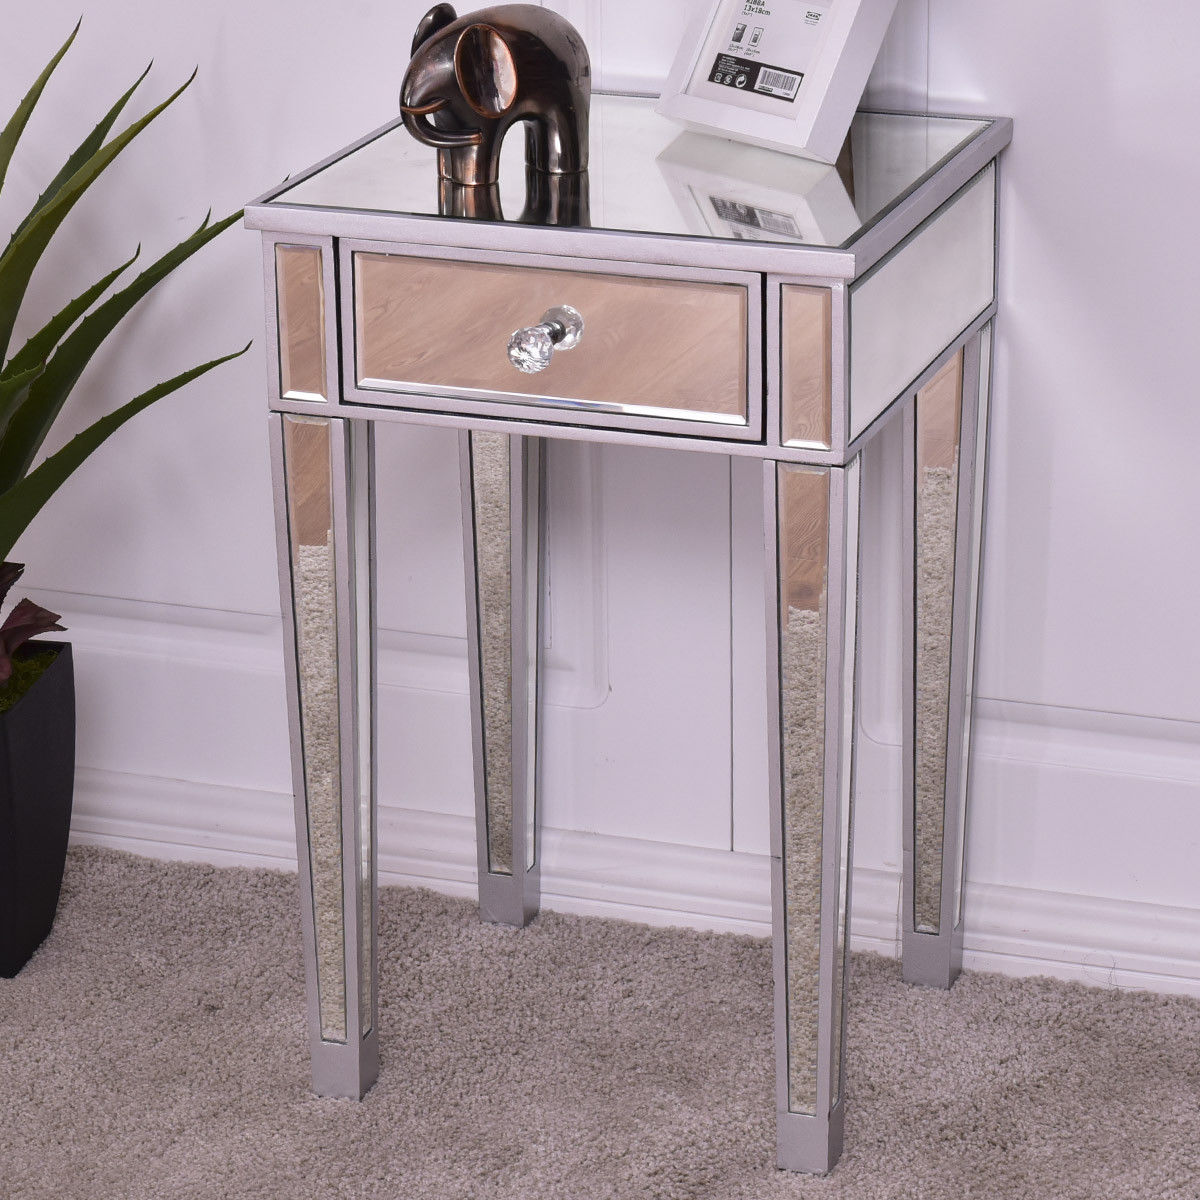 giantex mirrored accent table nightstand end luxury modern bedside storage cabinet with drawer coffee metal folding side west elm carpet tile edging strip adjustable hairpin legs